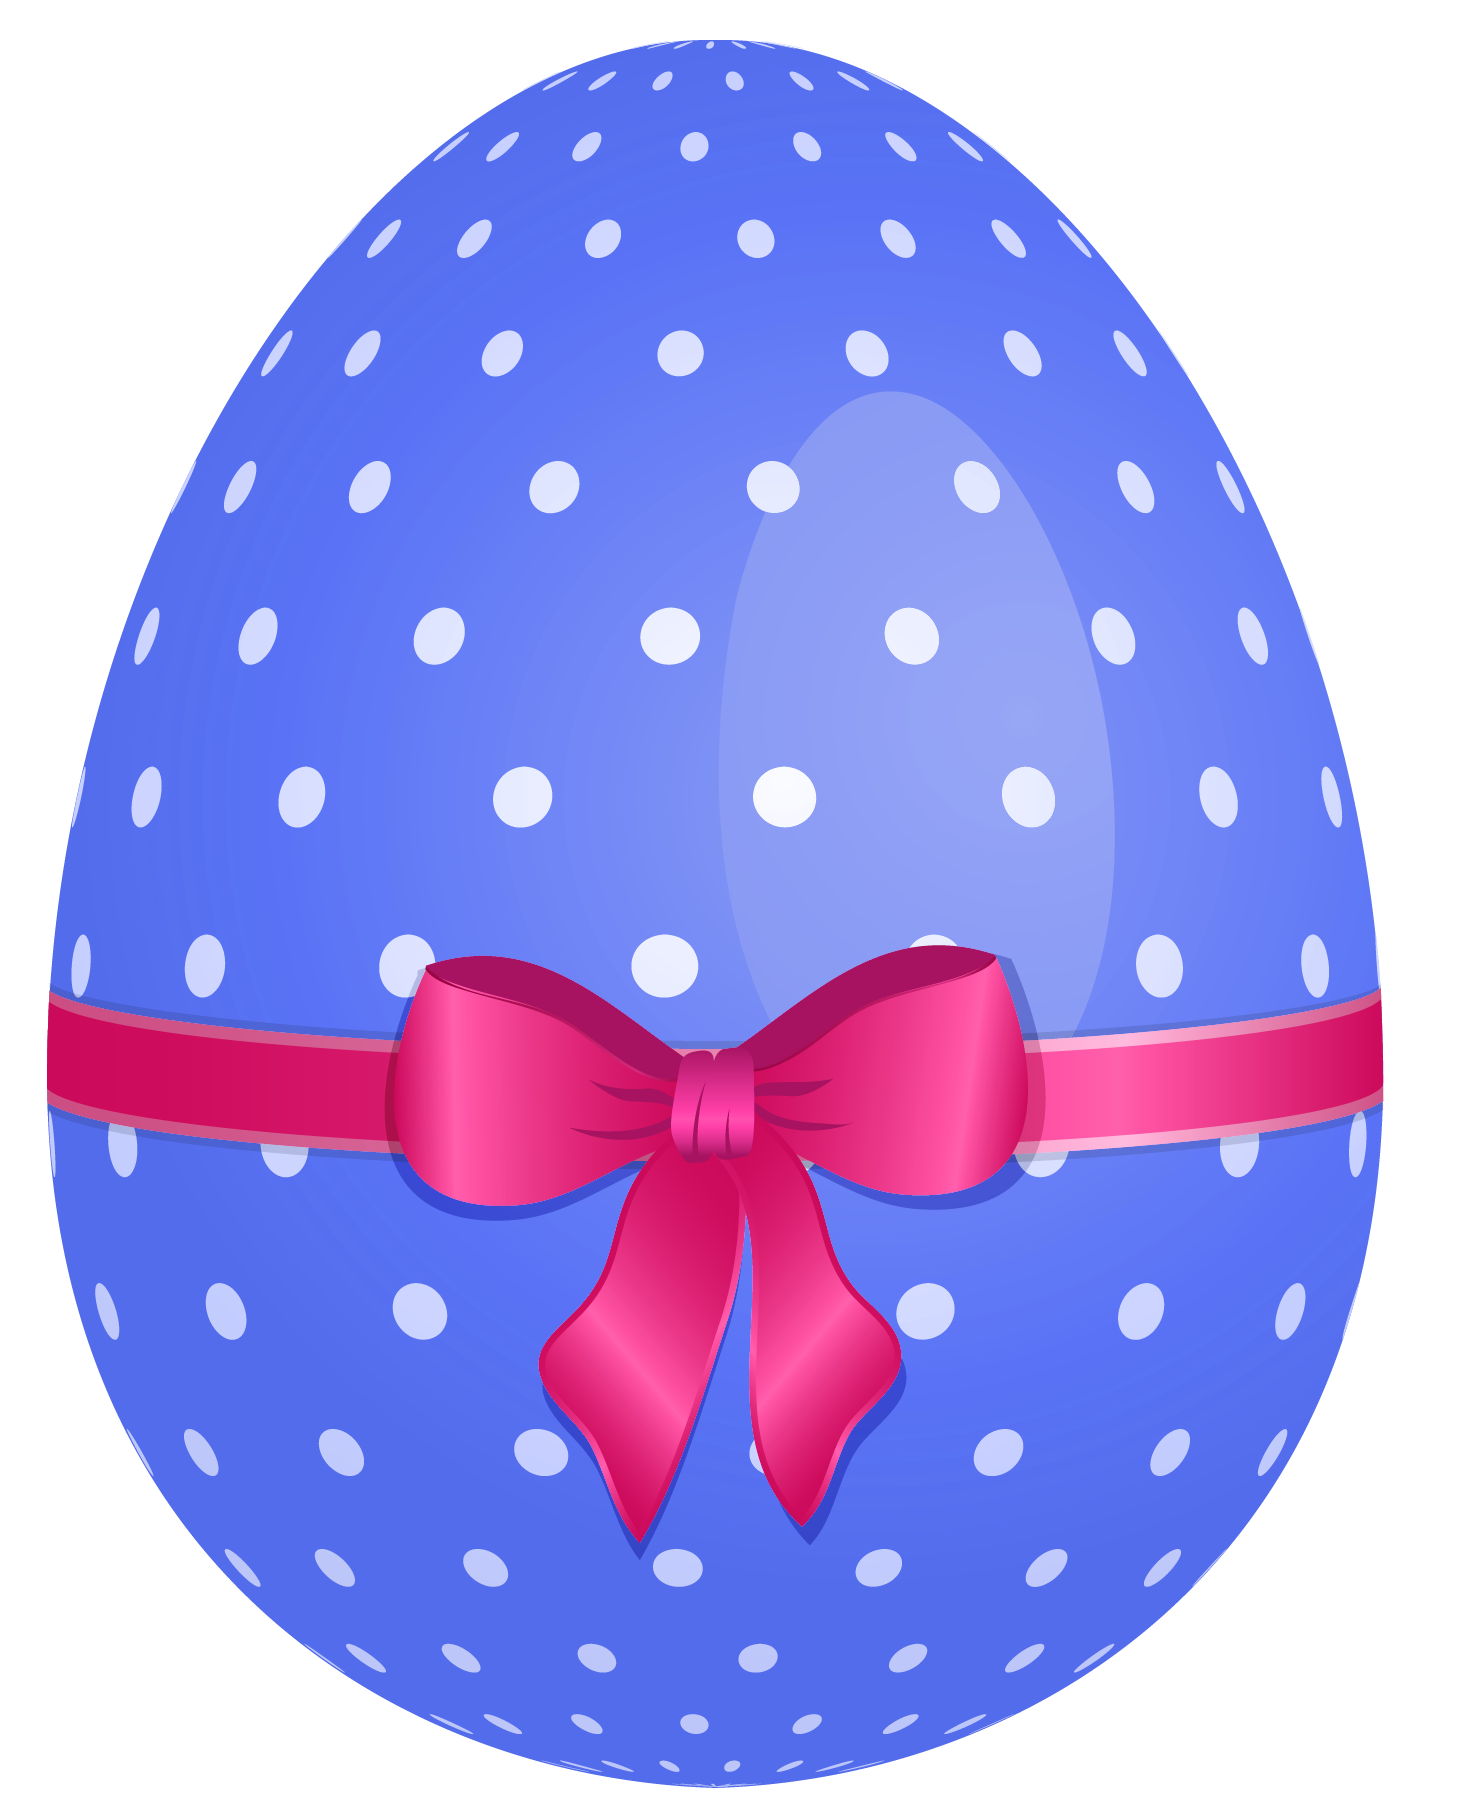 EASTER EGG CLIP ART - Easter Eggs PNG